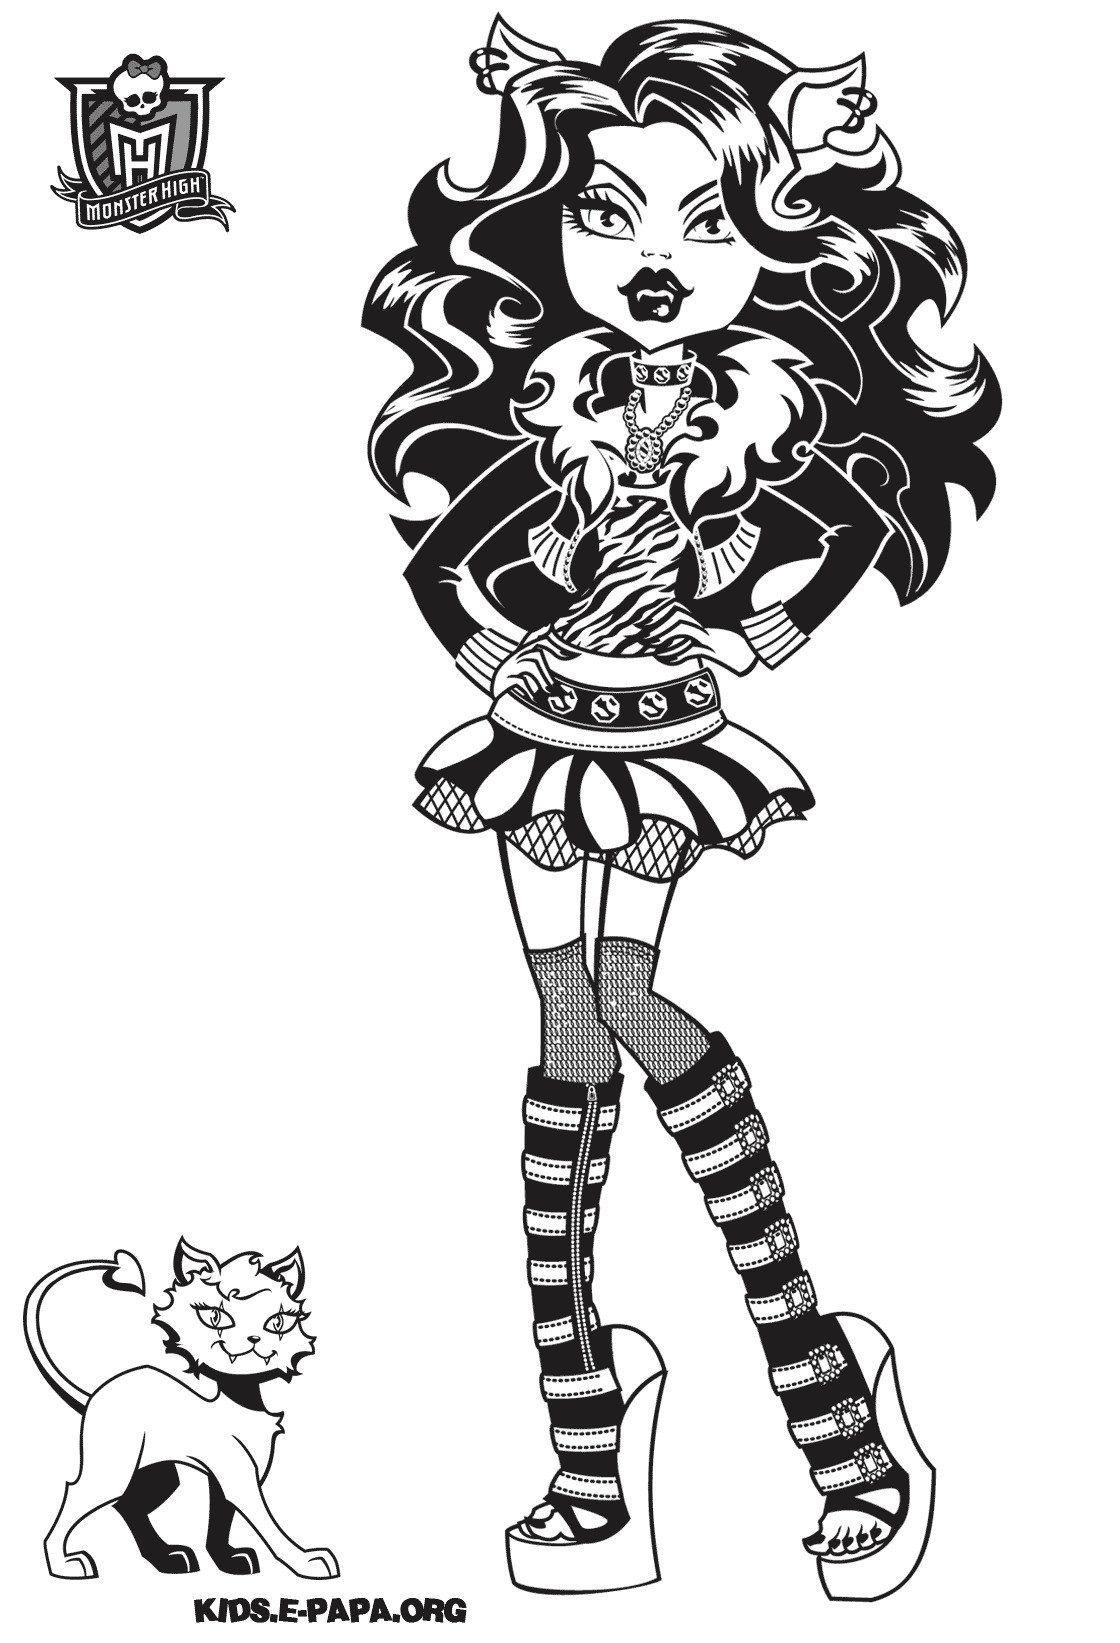 Monster High Ausmalbilder Inspirierend Clawdeen Wolf Monster High Coloring Page Elegant Monster High Fotos